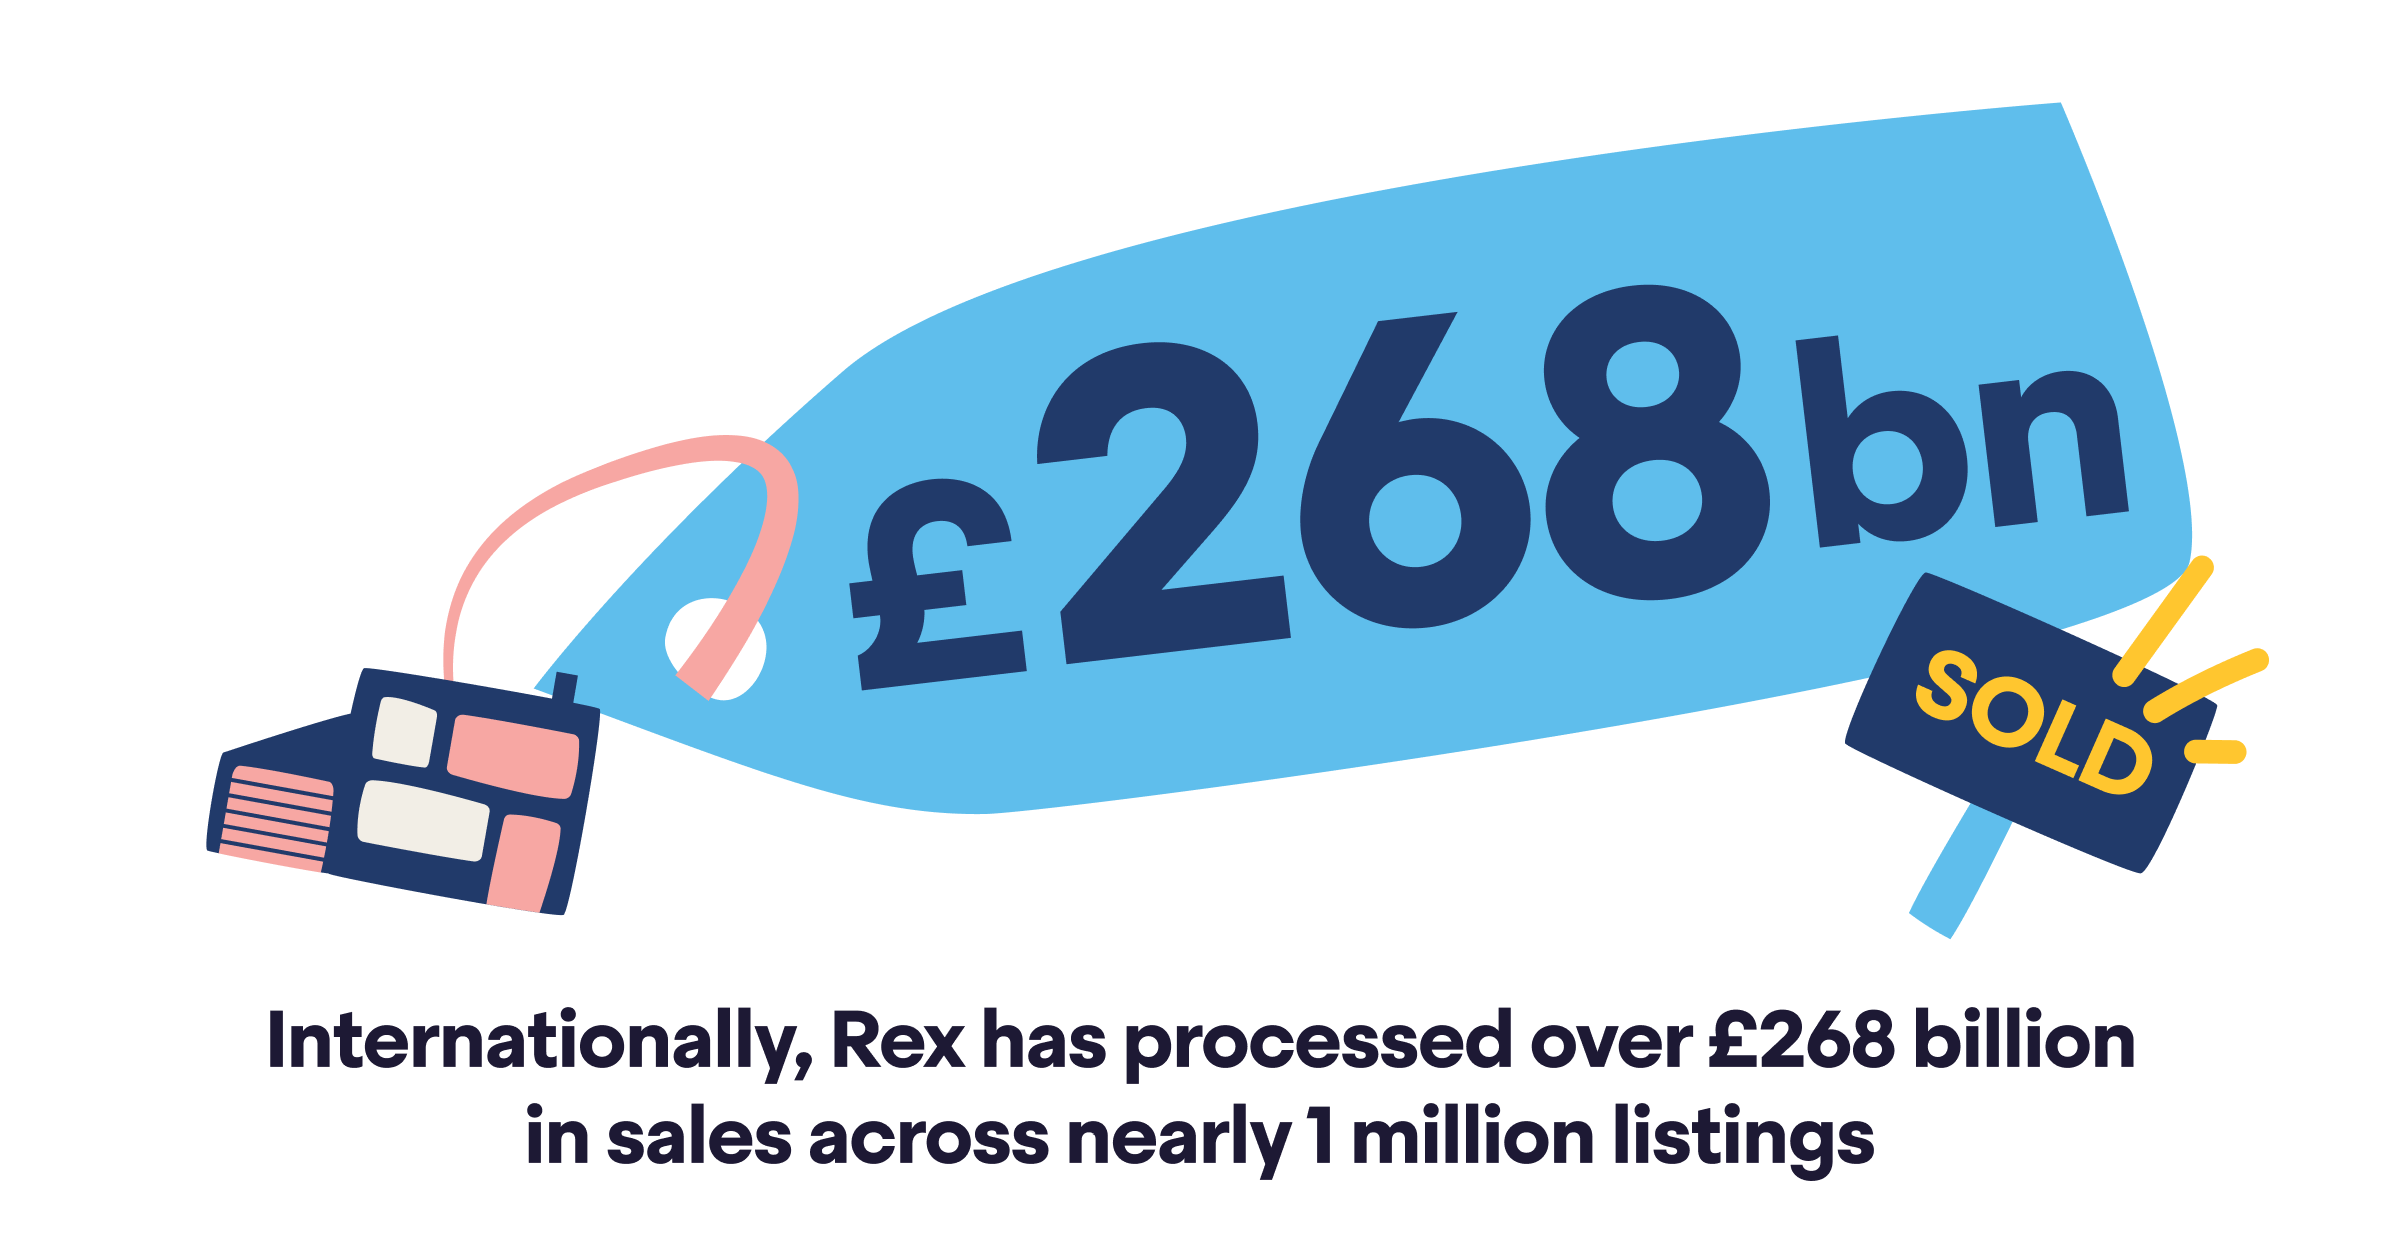 268 billion pounds in sales across more than 1 million listings